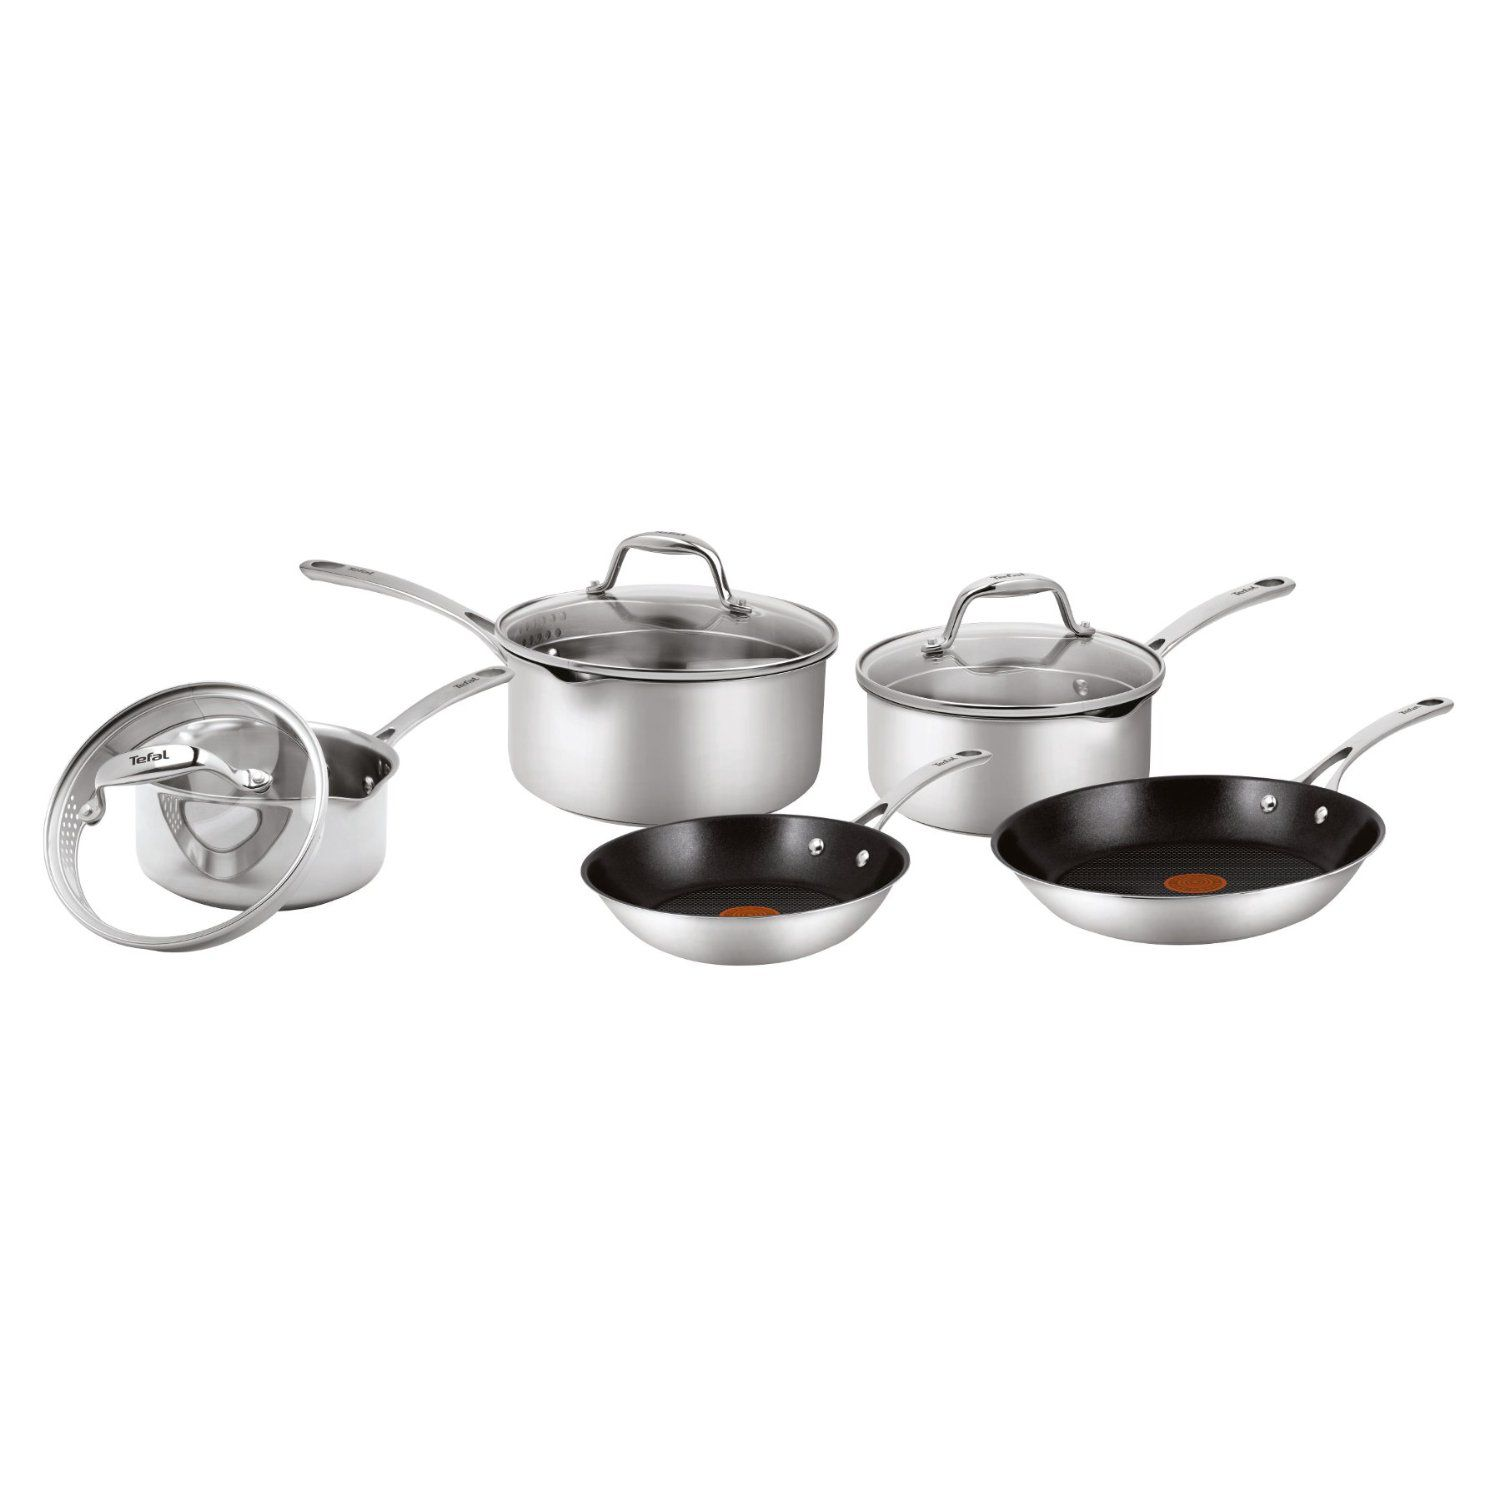 EasyStrain stainless steel 5pc cook set